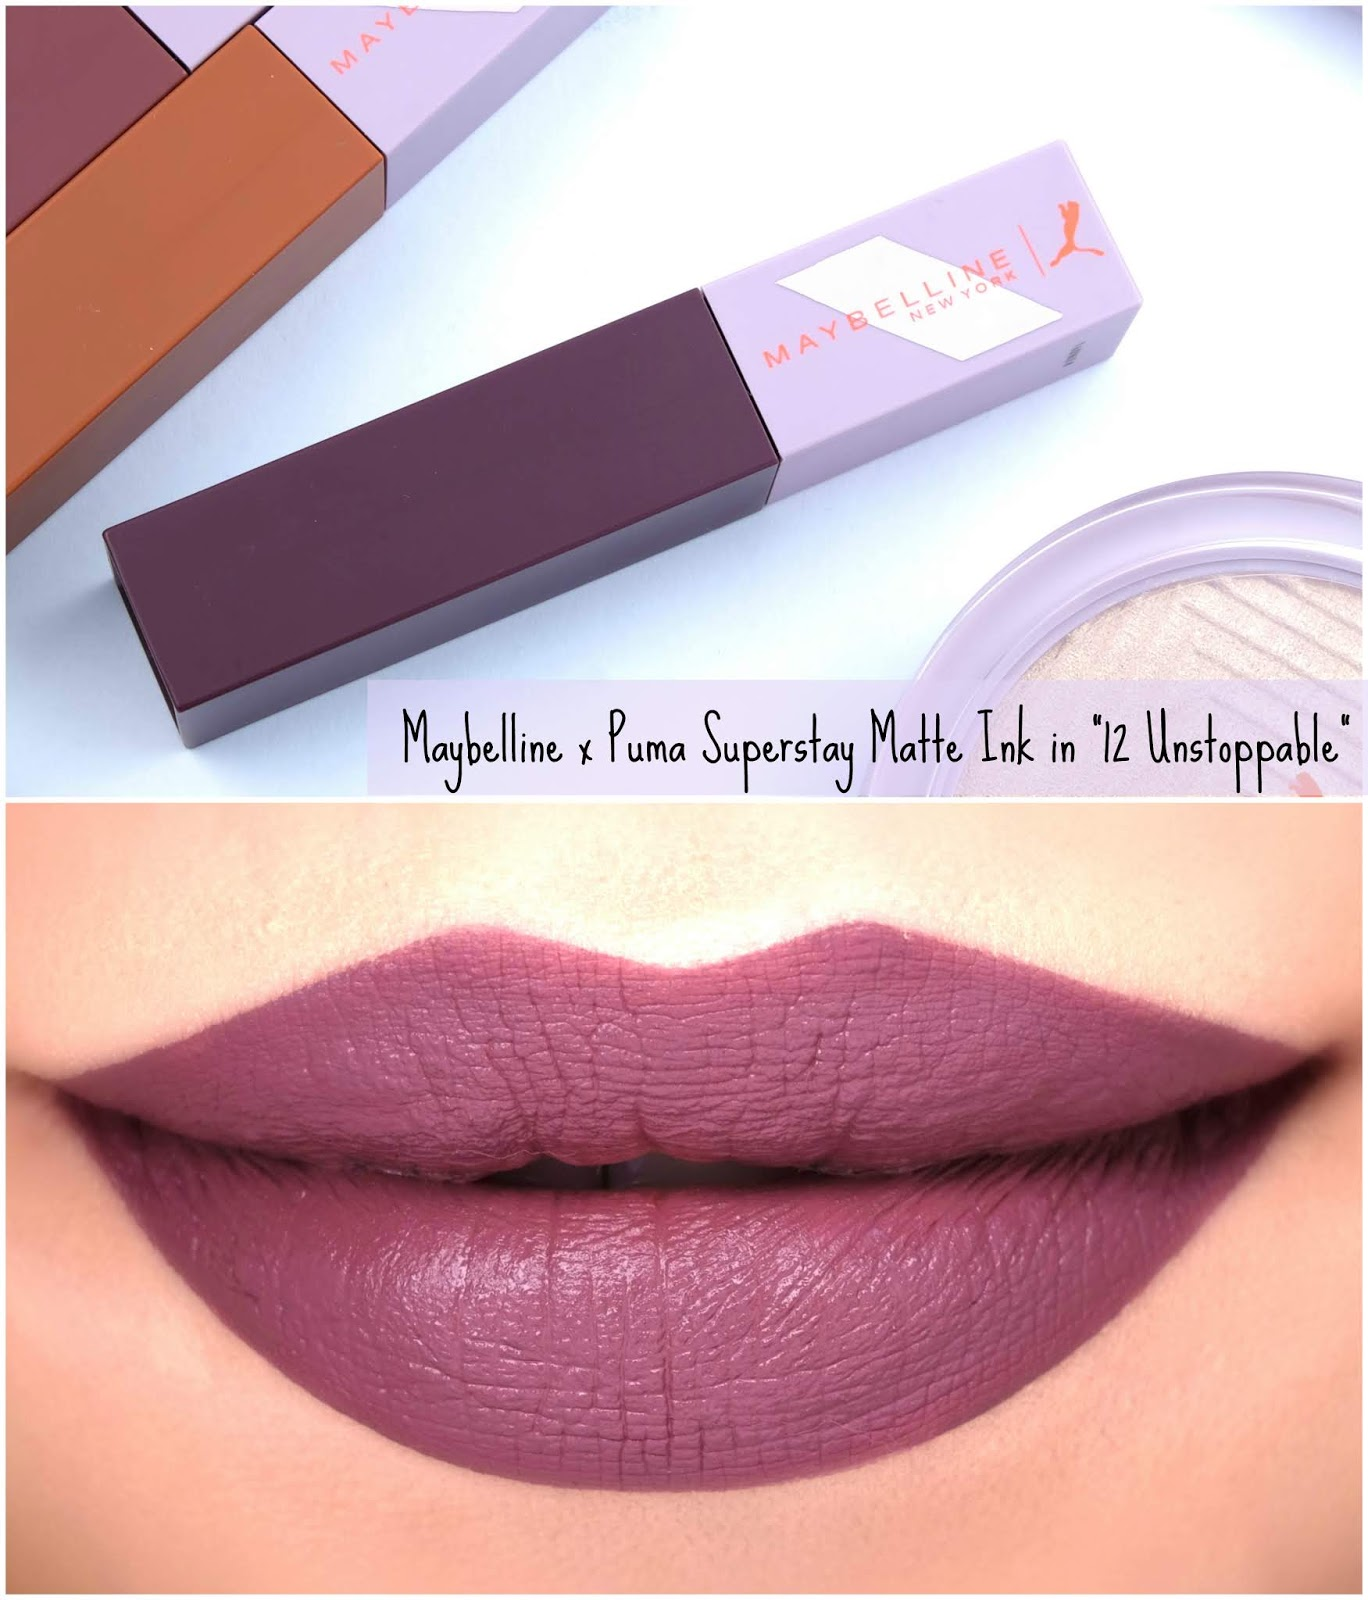 "Maybelline | Maybelline x Puma Superstay Matte Ink in ""12 Unstoppable"": Review and Swatches"